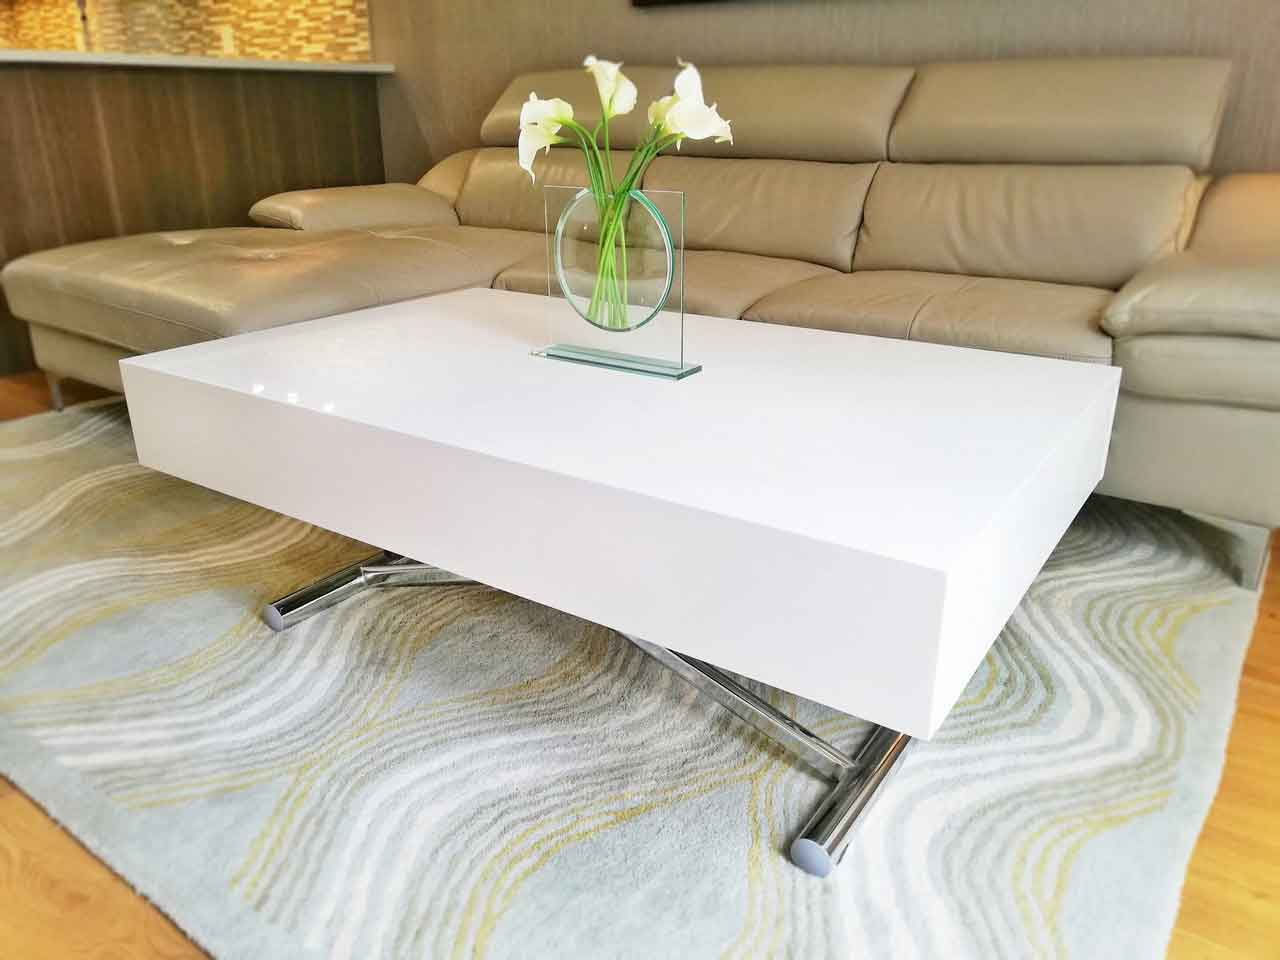 Four Functions of Using Expandable Coffee Table in Your House | Roy Home Design